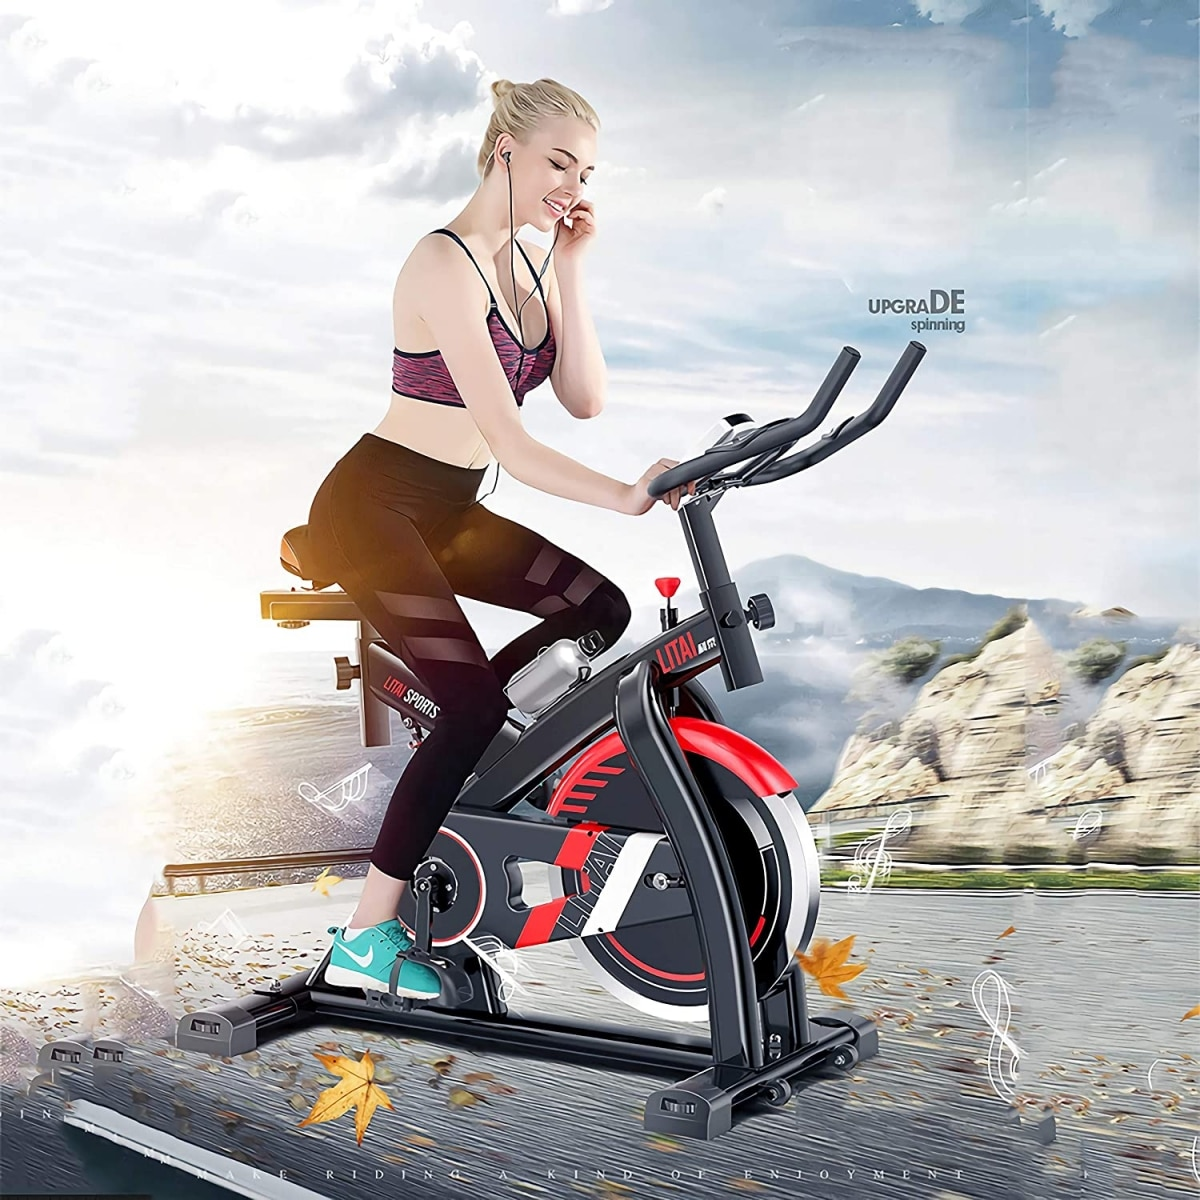 Bici de spinning y chica